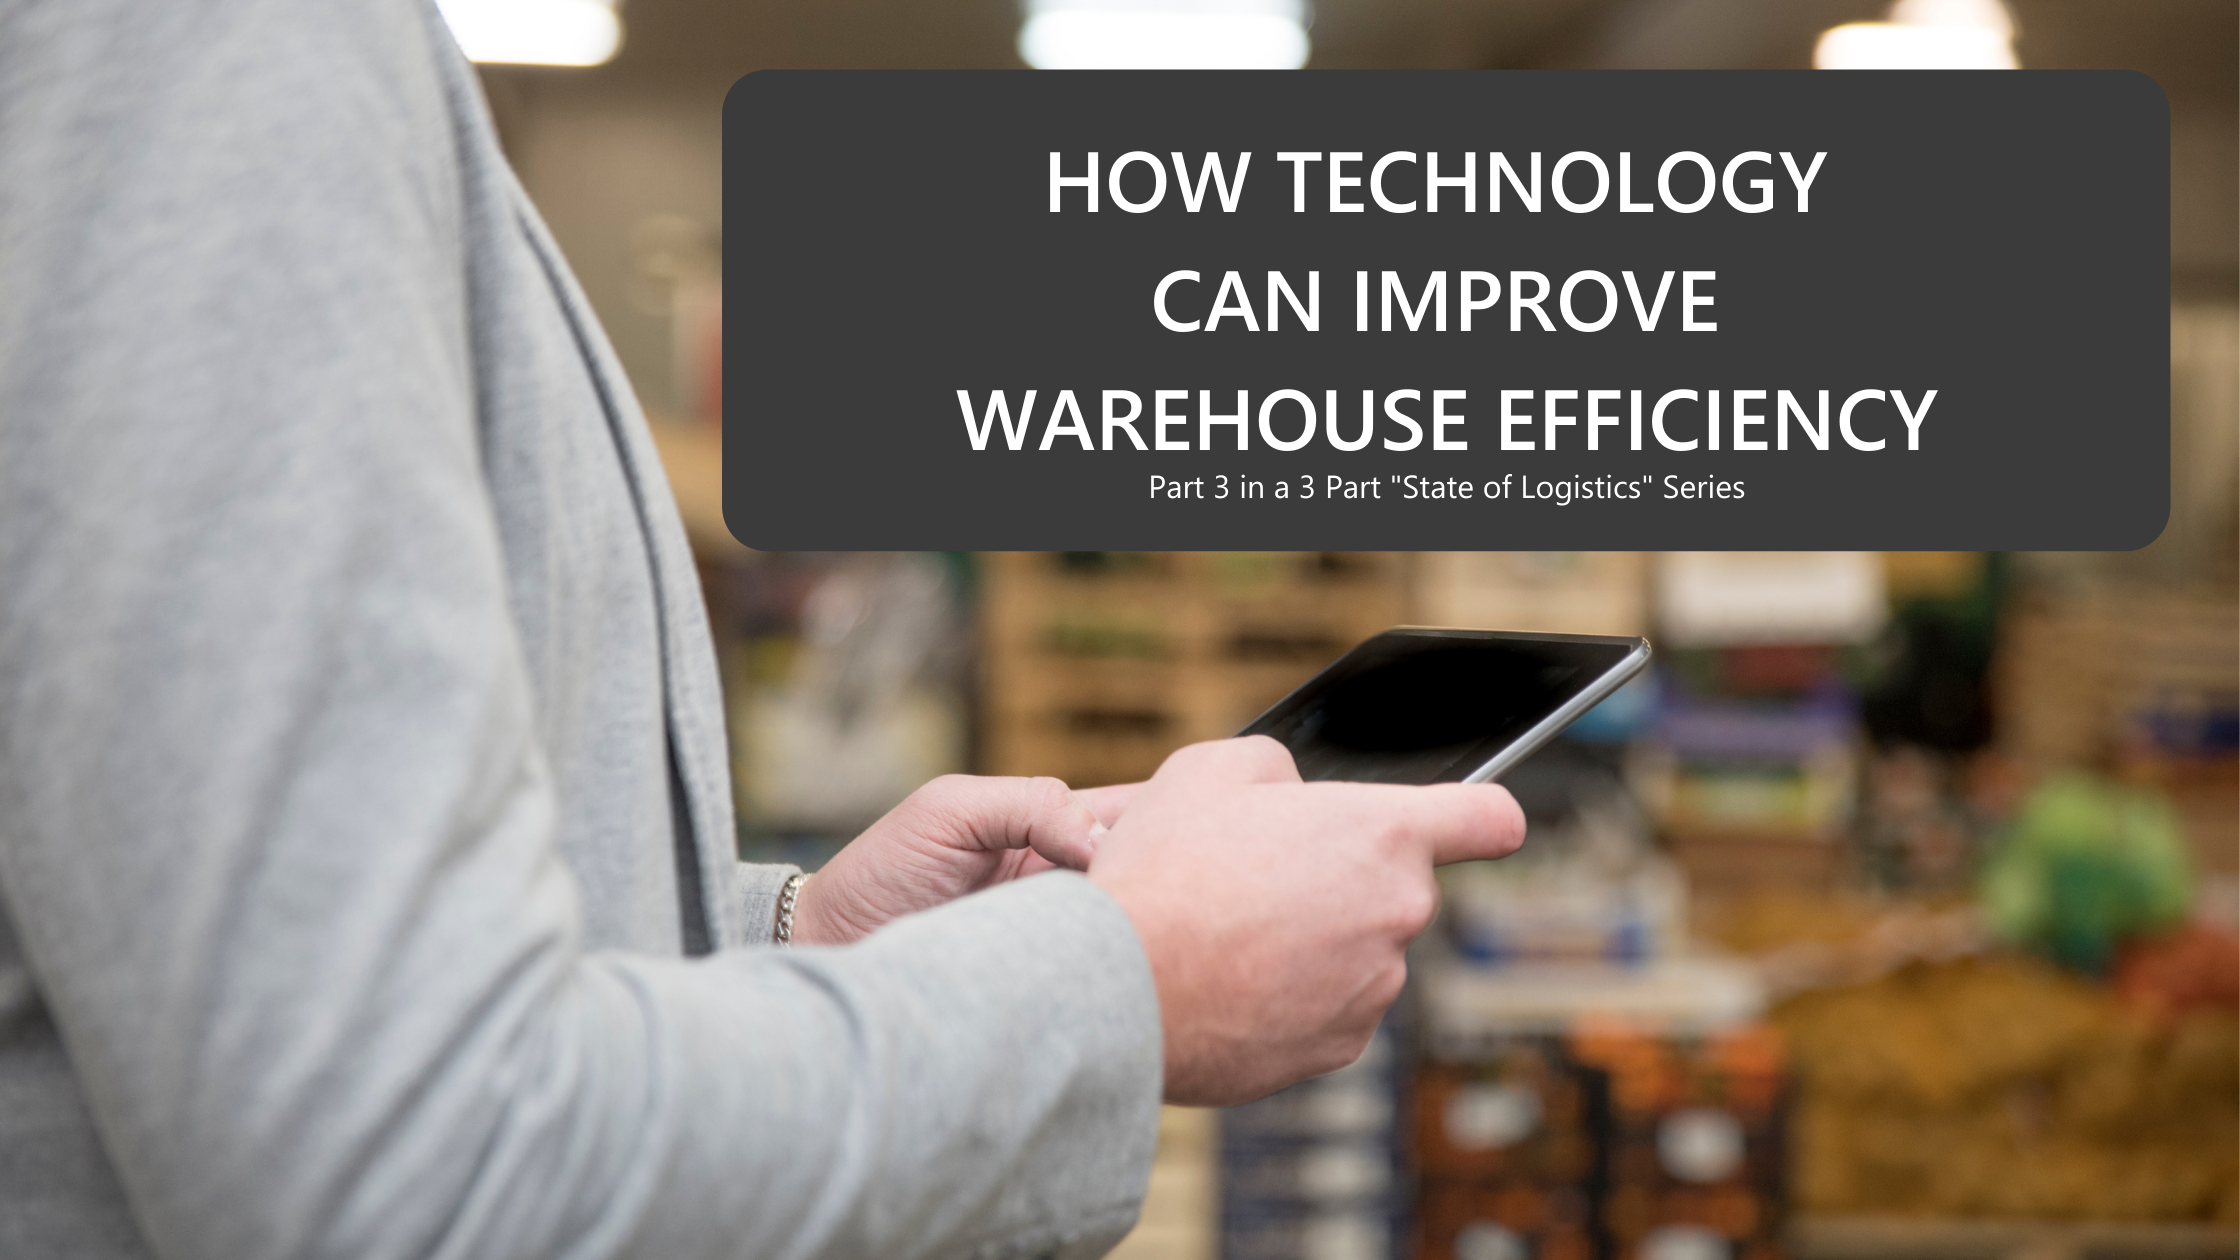 how-technology-can-improve-warehouse-efficiency-text-over-warehouse-background-and-arms-in-a-suit-holding-a-digital-tablet